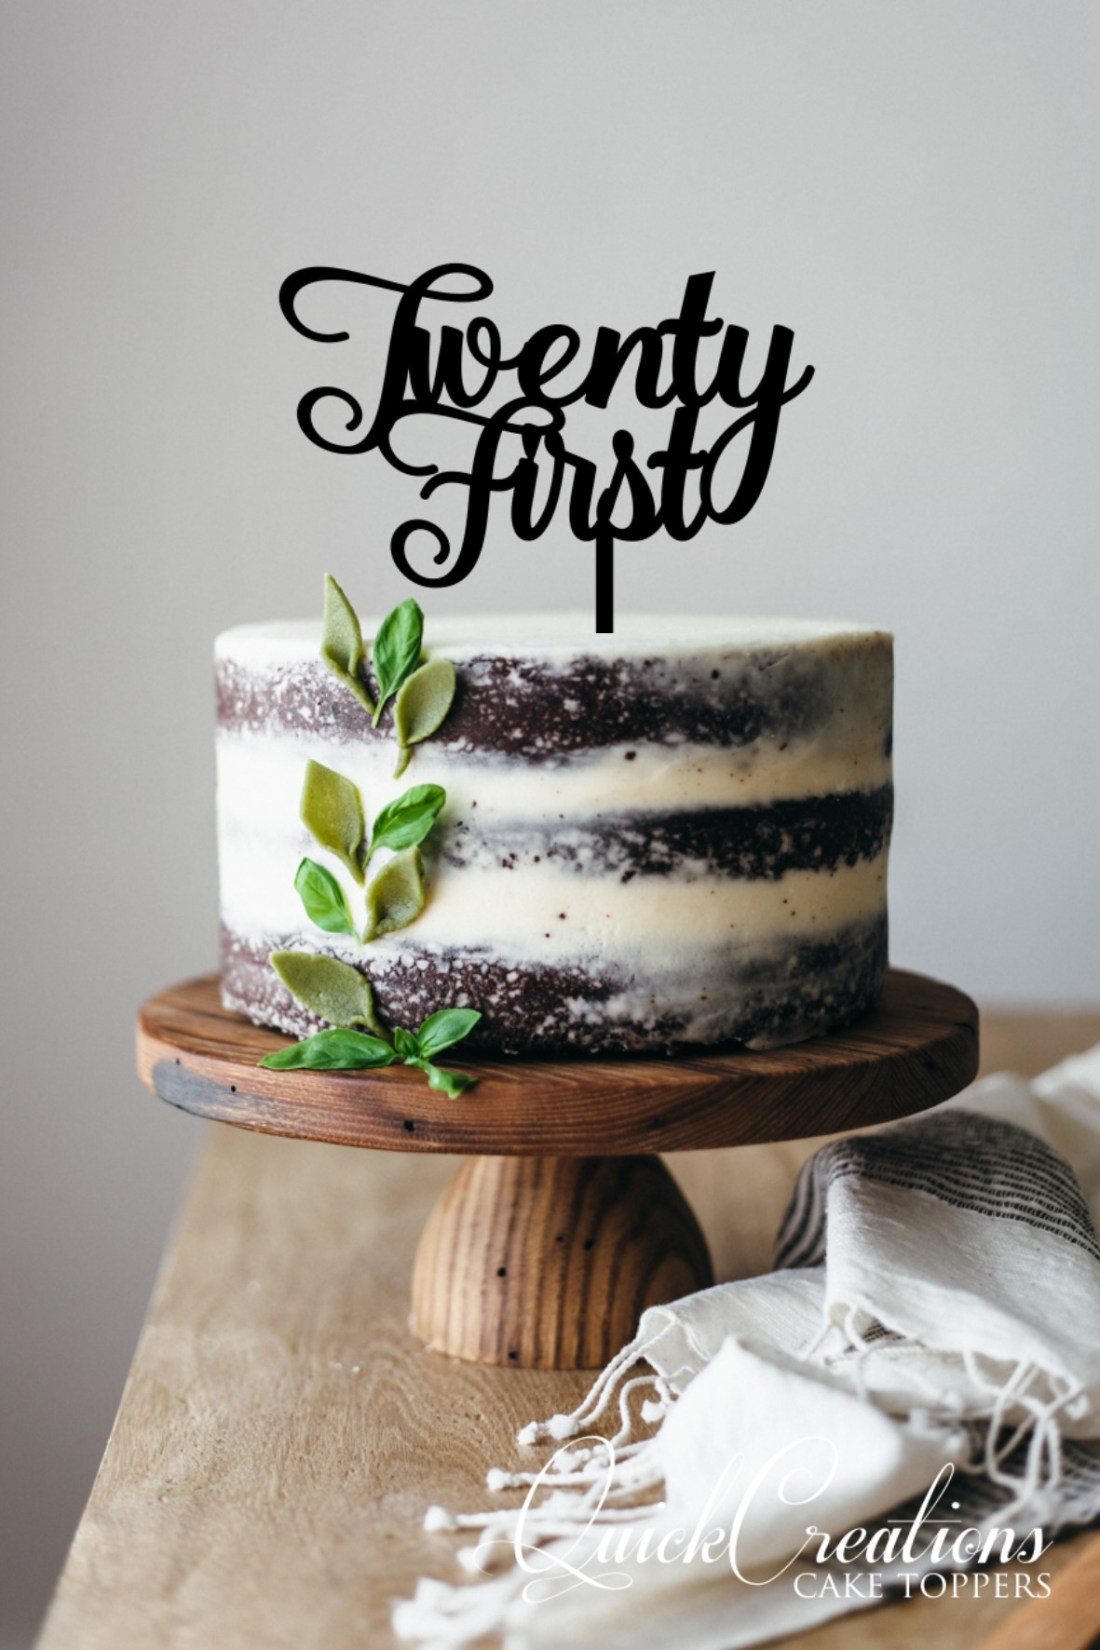 Quick Creations Cake Topper - Twenty First